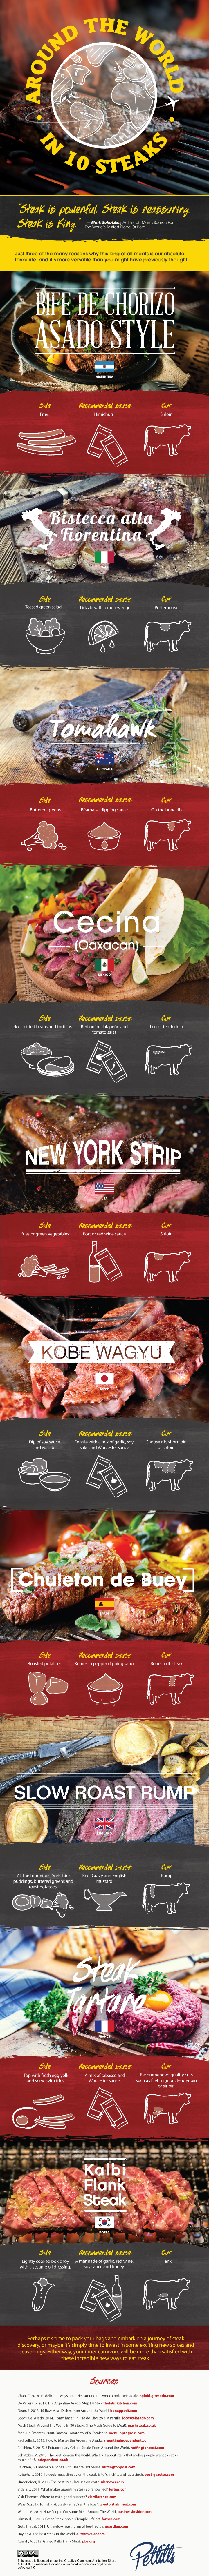 X-Ways-to-eat-steak-around-the-world-DV6